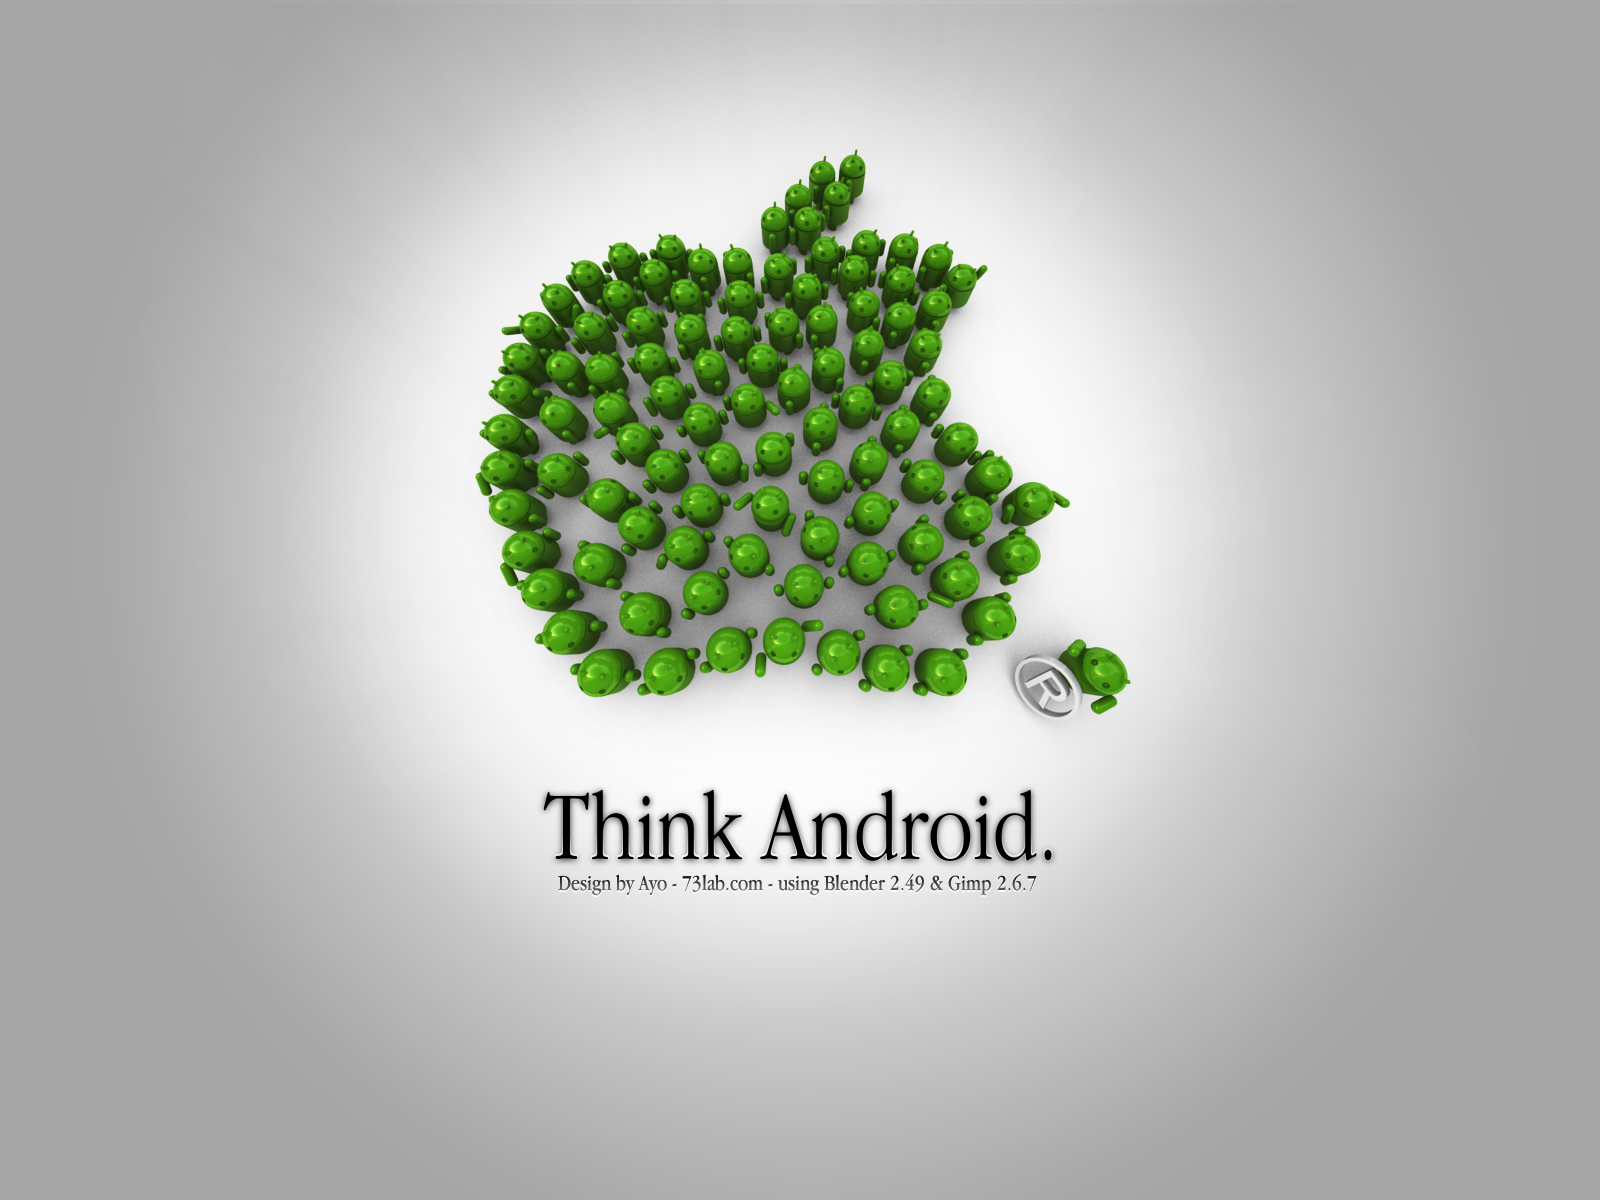 Think Android by Ayo73